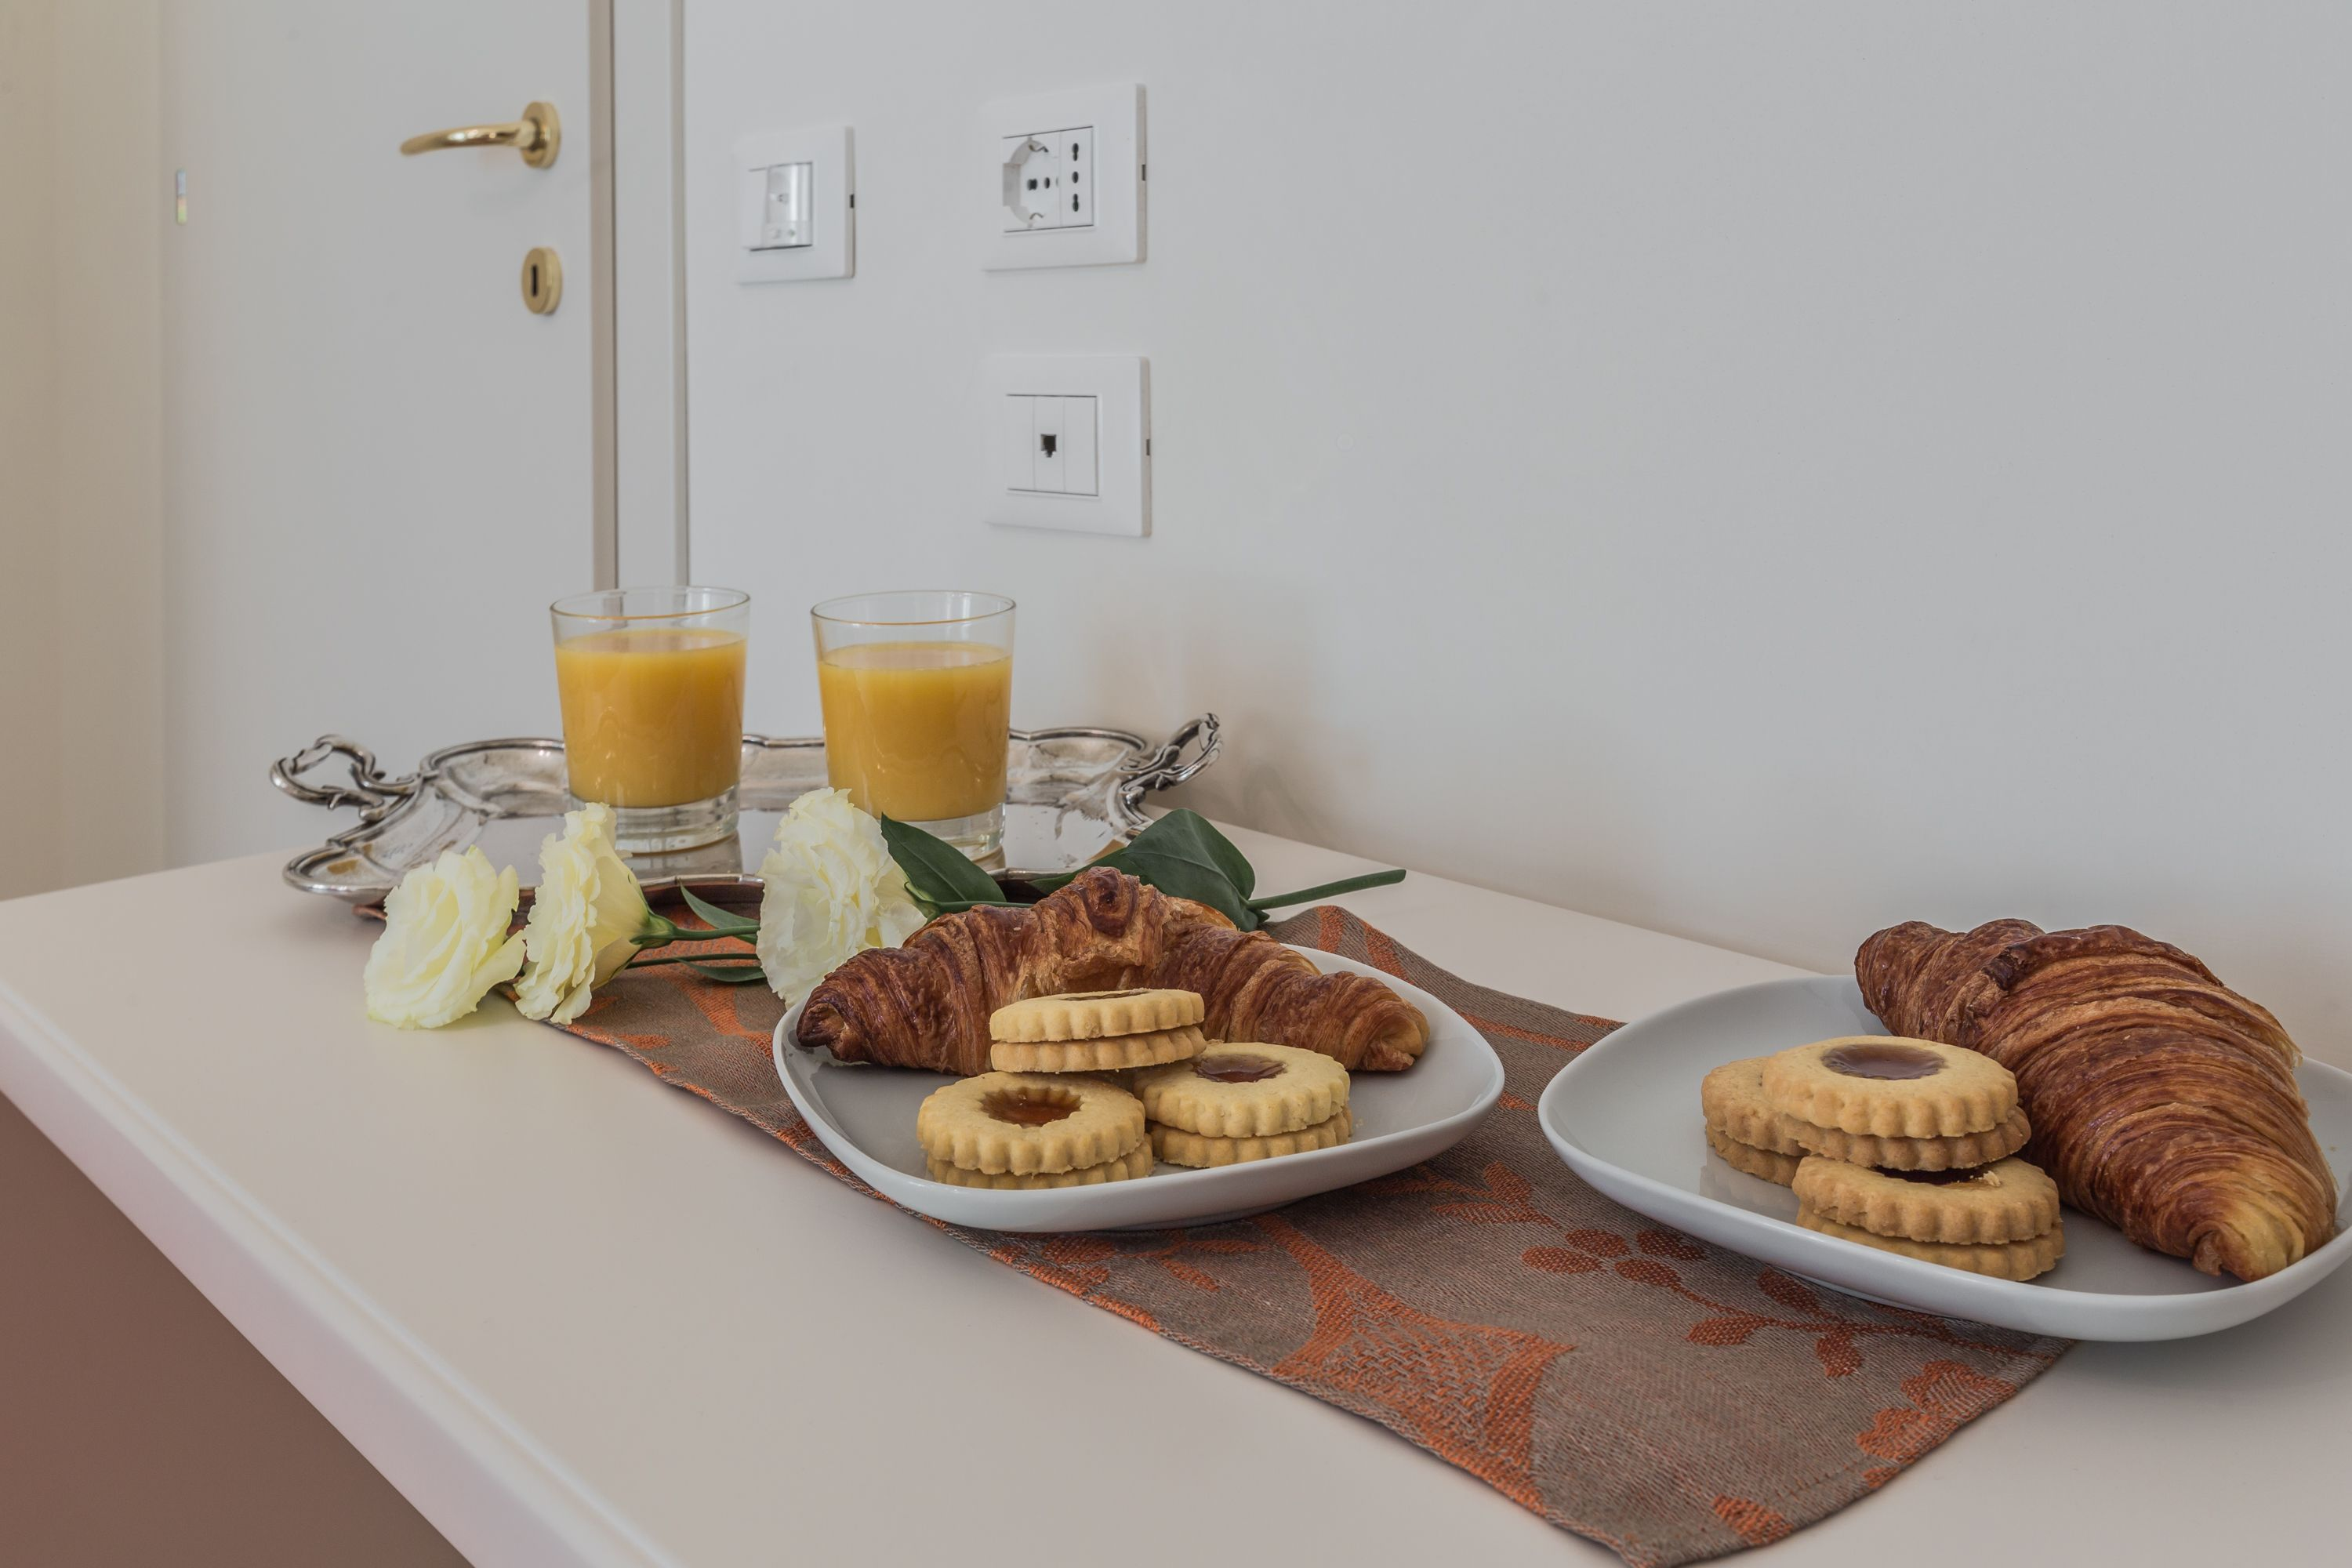 enjoy having breakfast in the bedroom, downstairs you can find exquisite cafés and groceries!